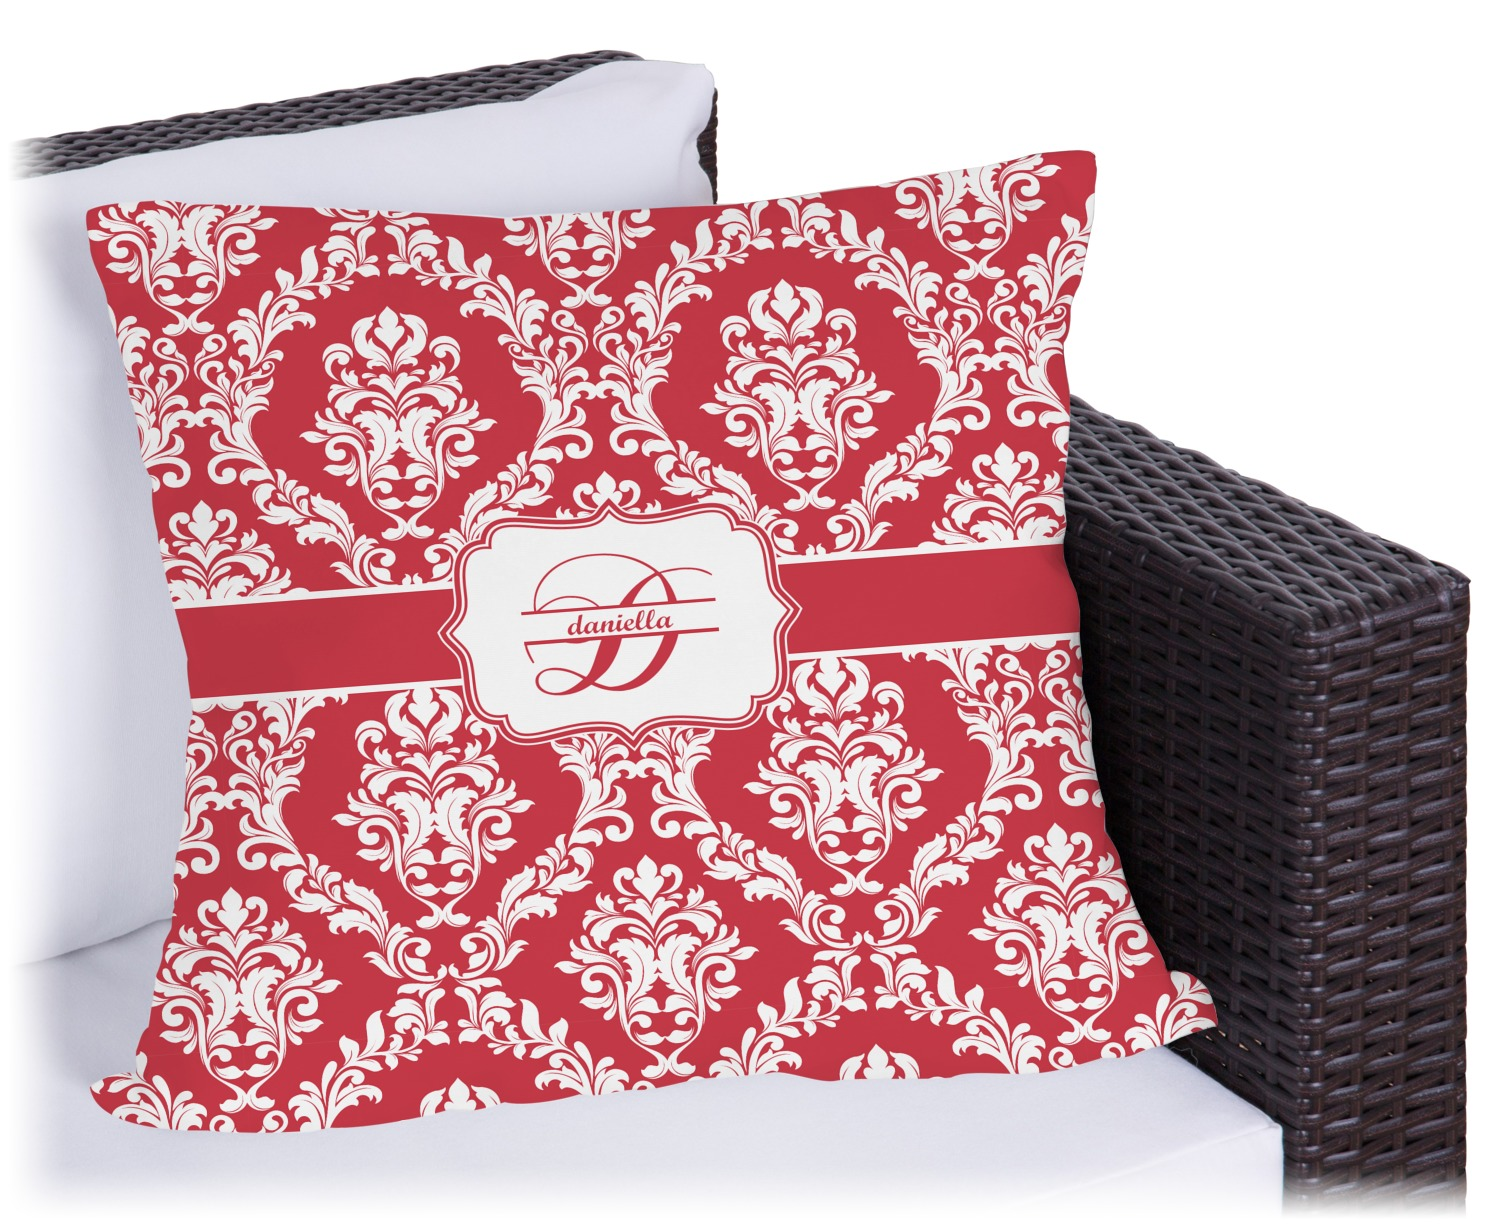 Damask Outdoor Pillow (Personalized) - YouCustomizeIt